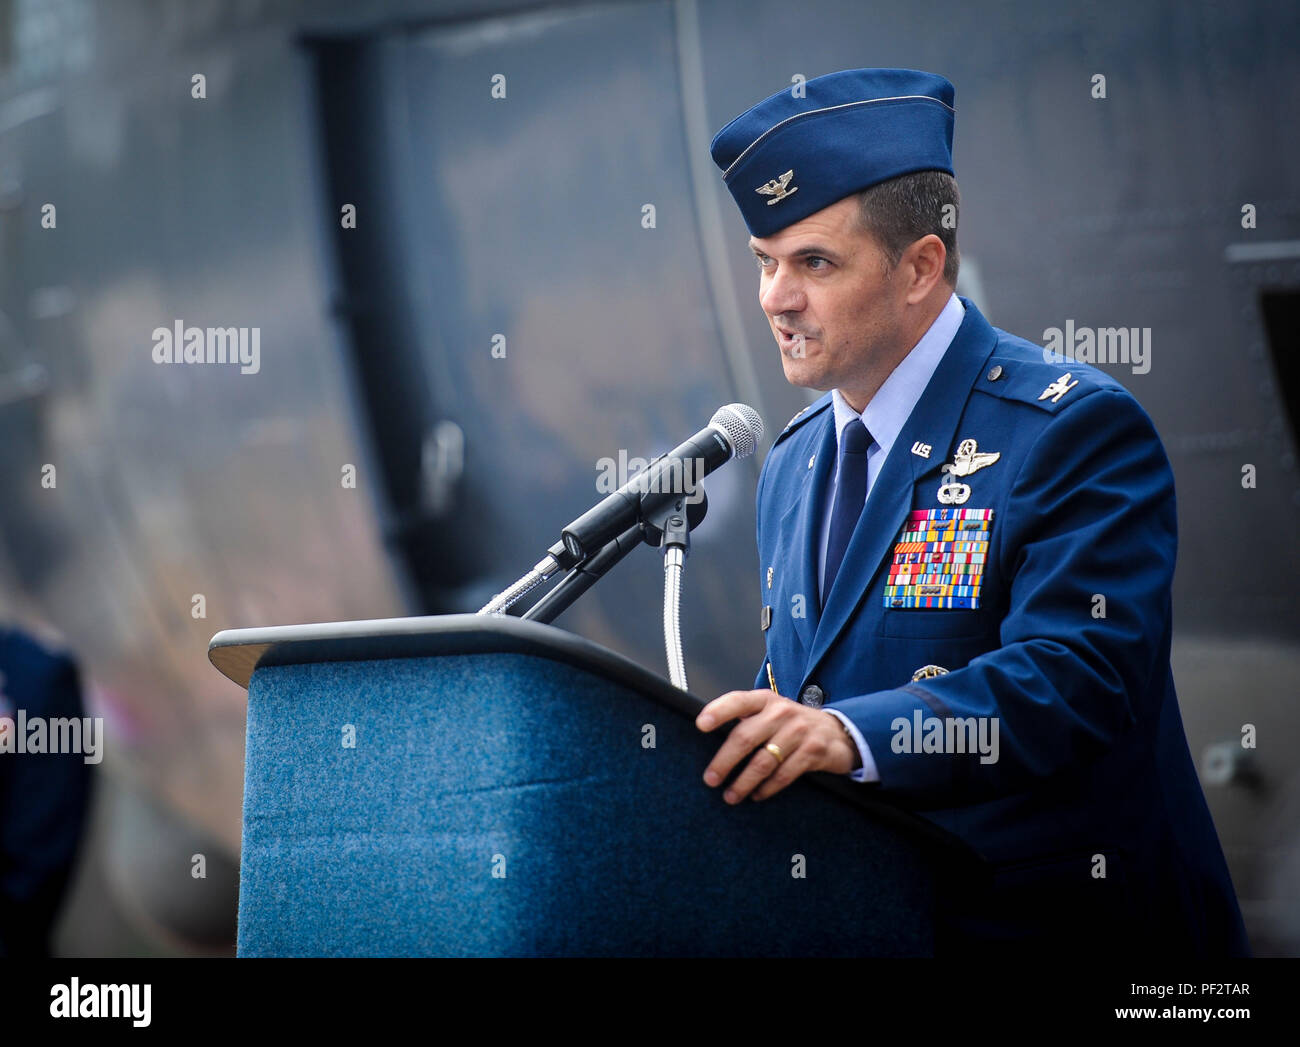 Col. Sean Farrell, commander of the 1st Special Operations Wing, speaks to guests during the AC-130H Spectre dedication ceremony at Hurlburt Field, Fla., Jan. 2, 2016. The Spectre played a role in operations all over the world, first in Vietnam, proceeding into the latter of the 20th century with operations Eagle Claw, Urgent Fury, Just Cause and Desert Storm. The last operational years of the AC-130H Spectre were spent flying combat missions in the Balkans and Somalia, and in Afghanistan in support of Operation Enduring Freedom. (U.S. Air Force photo by Senior Airman Meagan Schutter) - Stock Image